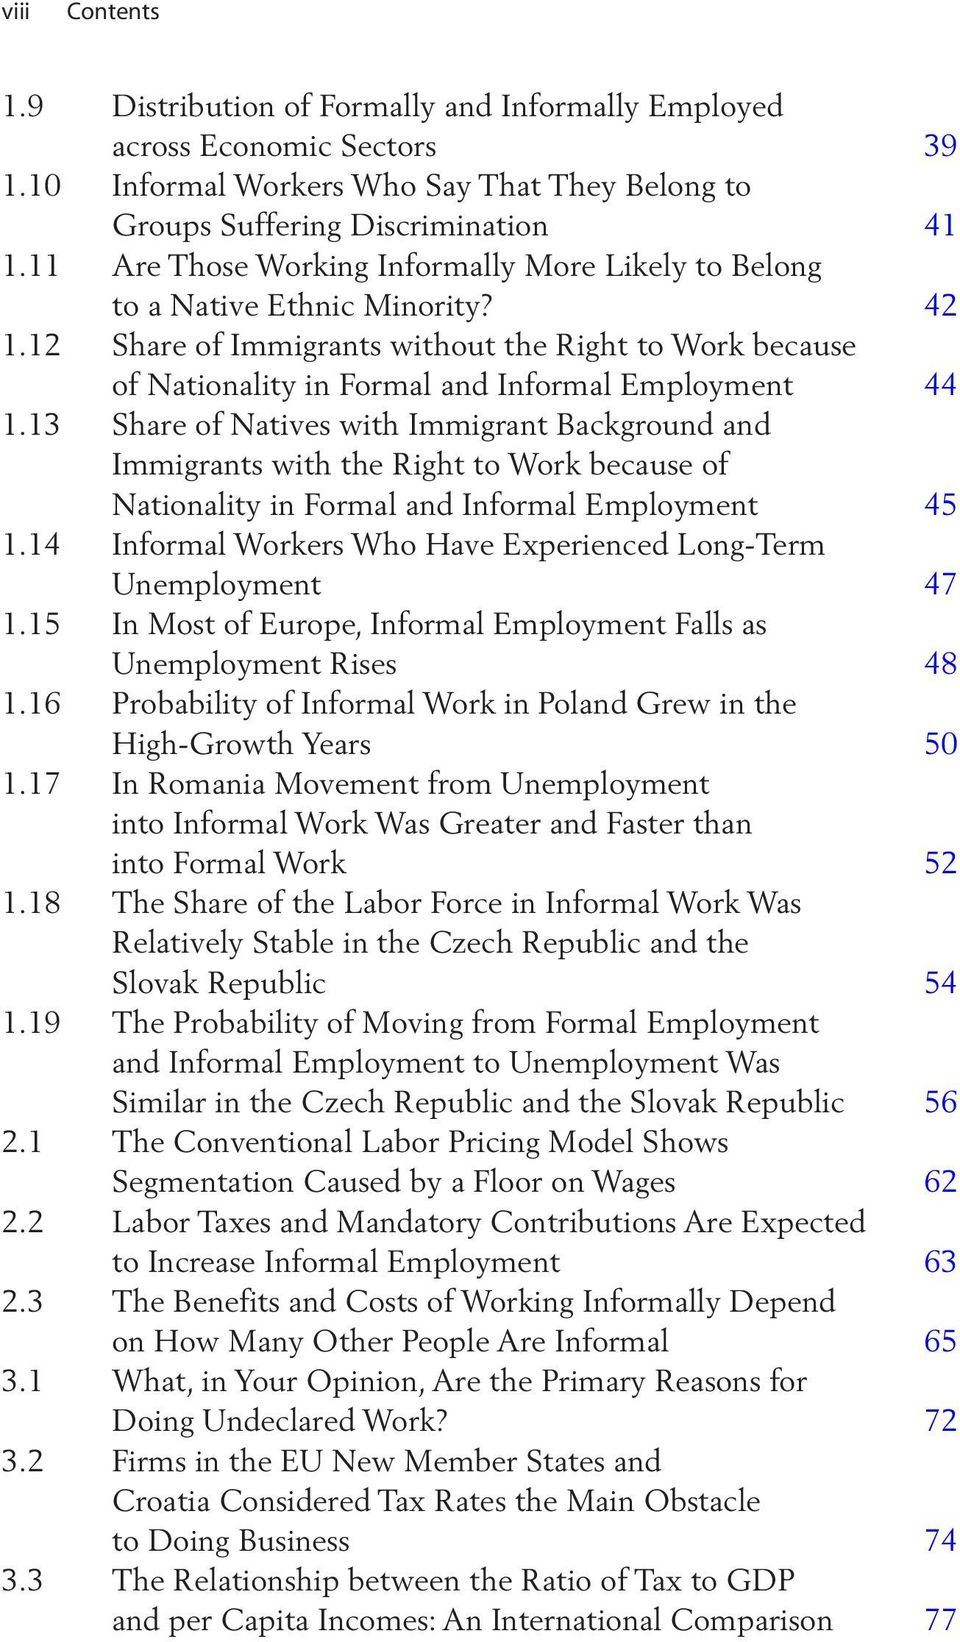 13 Share of Natives with Immigrant Background and Immigrants with the Right to Work because of Nationality in Formal and Informal Employment 45 1.